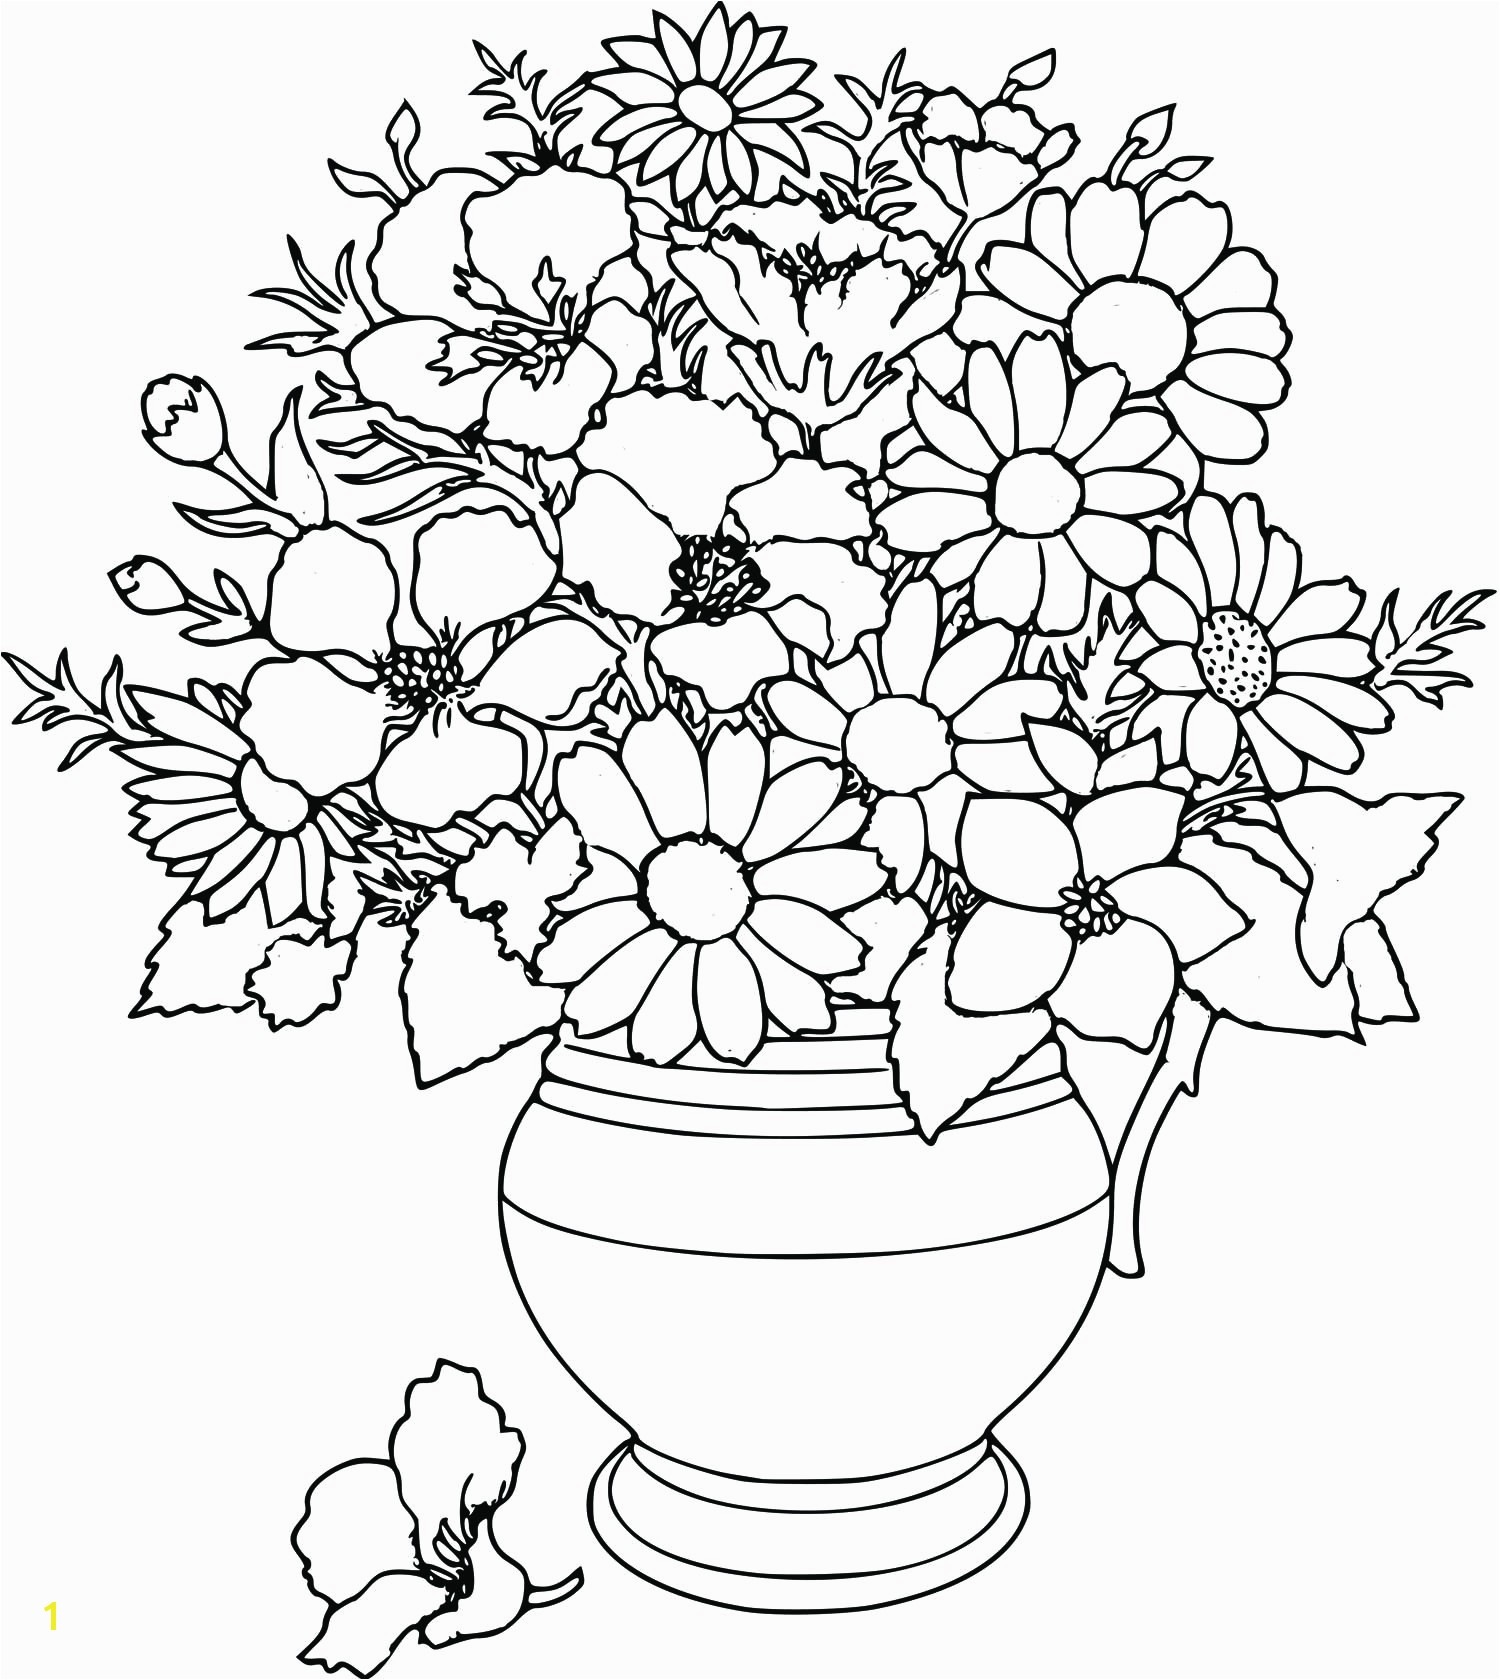 Free Flower Coloring Pages Printable 15 C 20 Beautifull Sheets Flowers